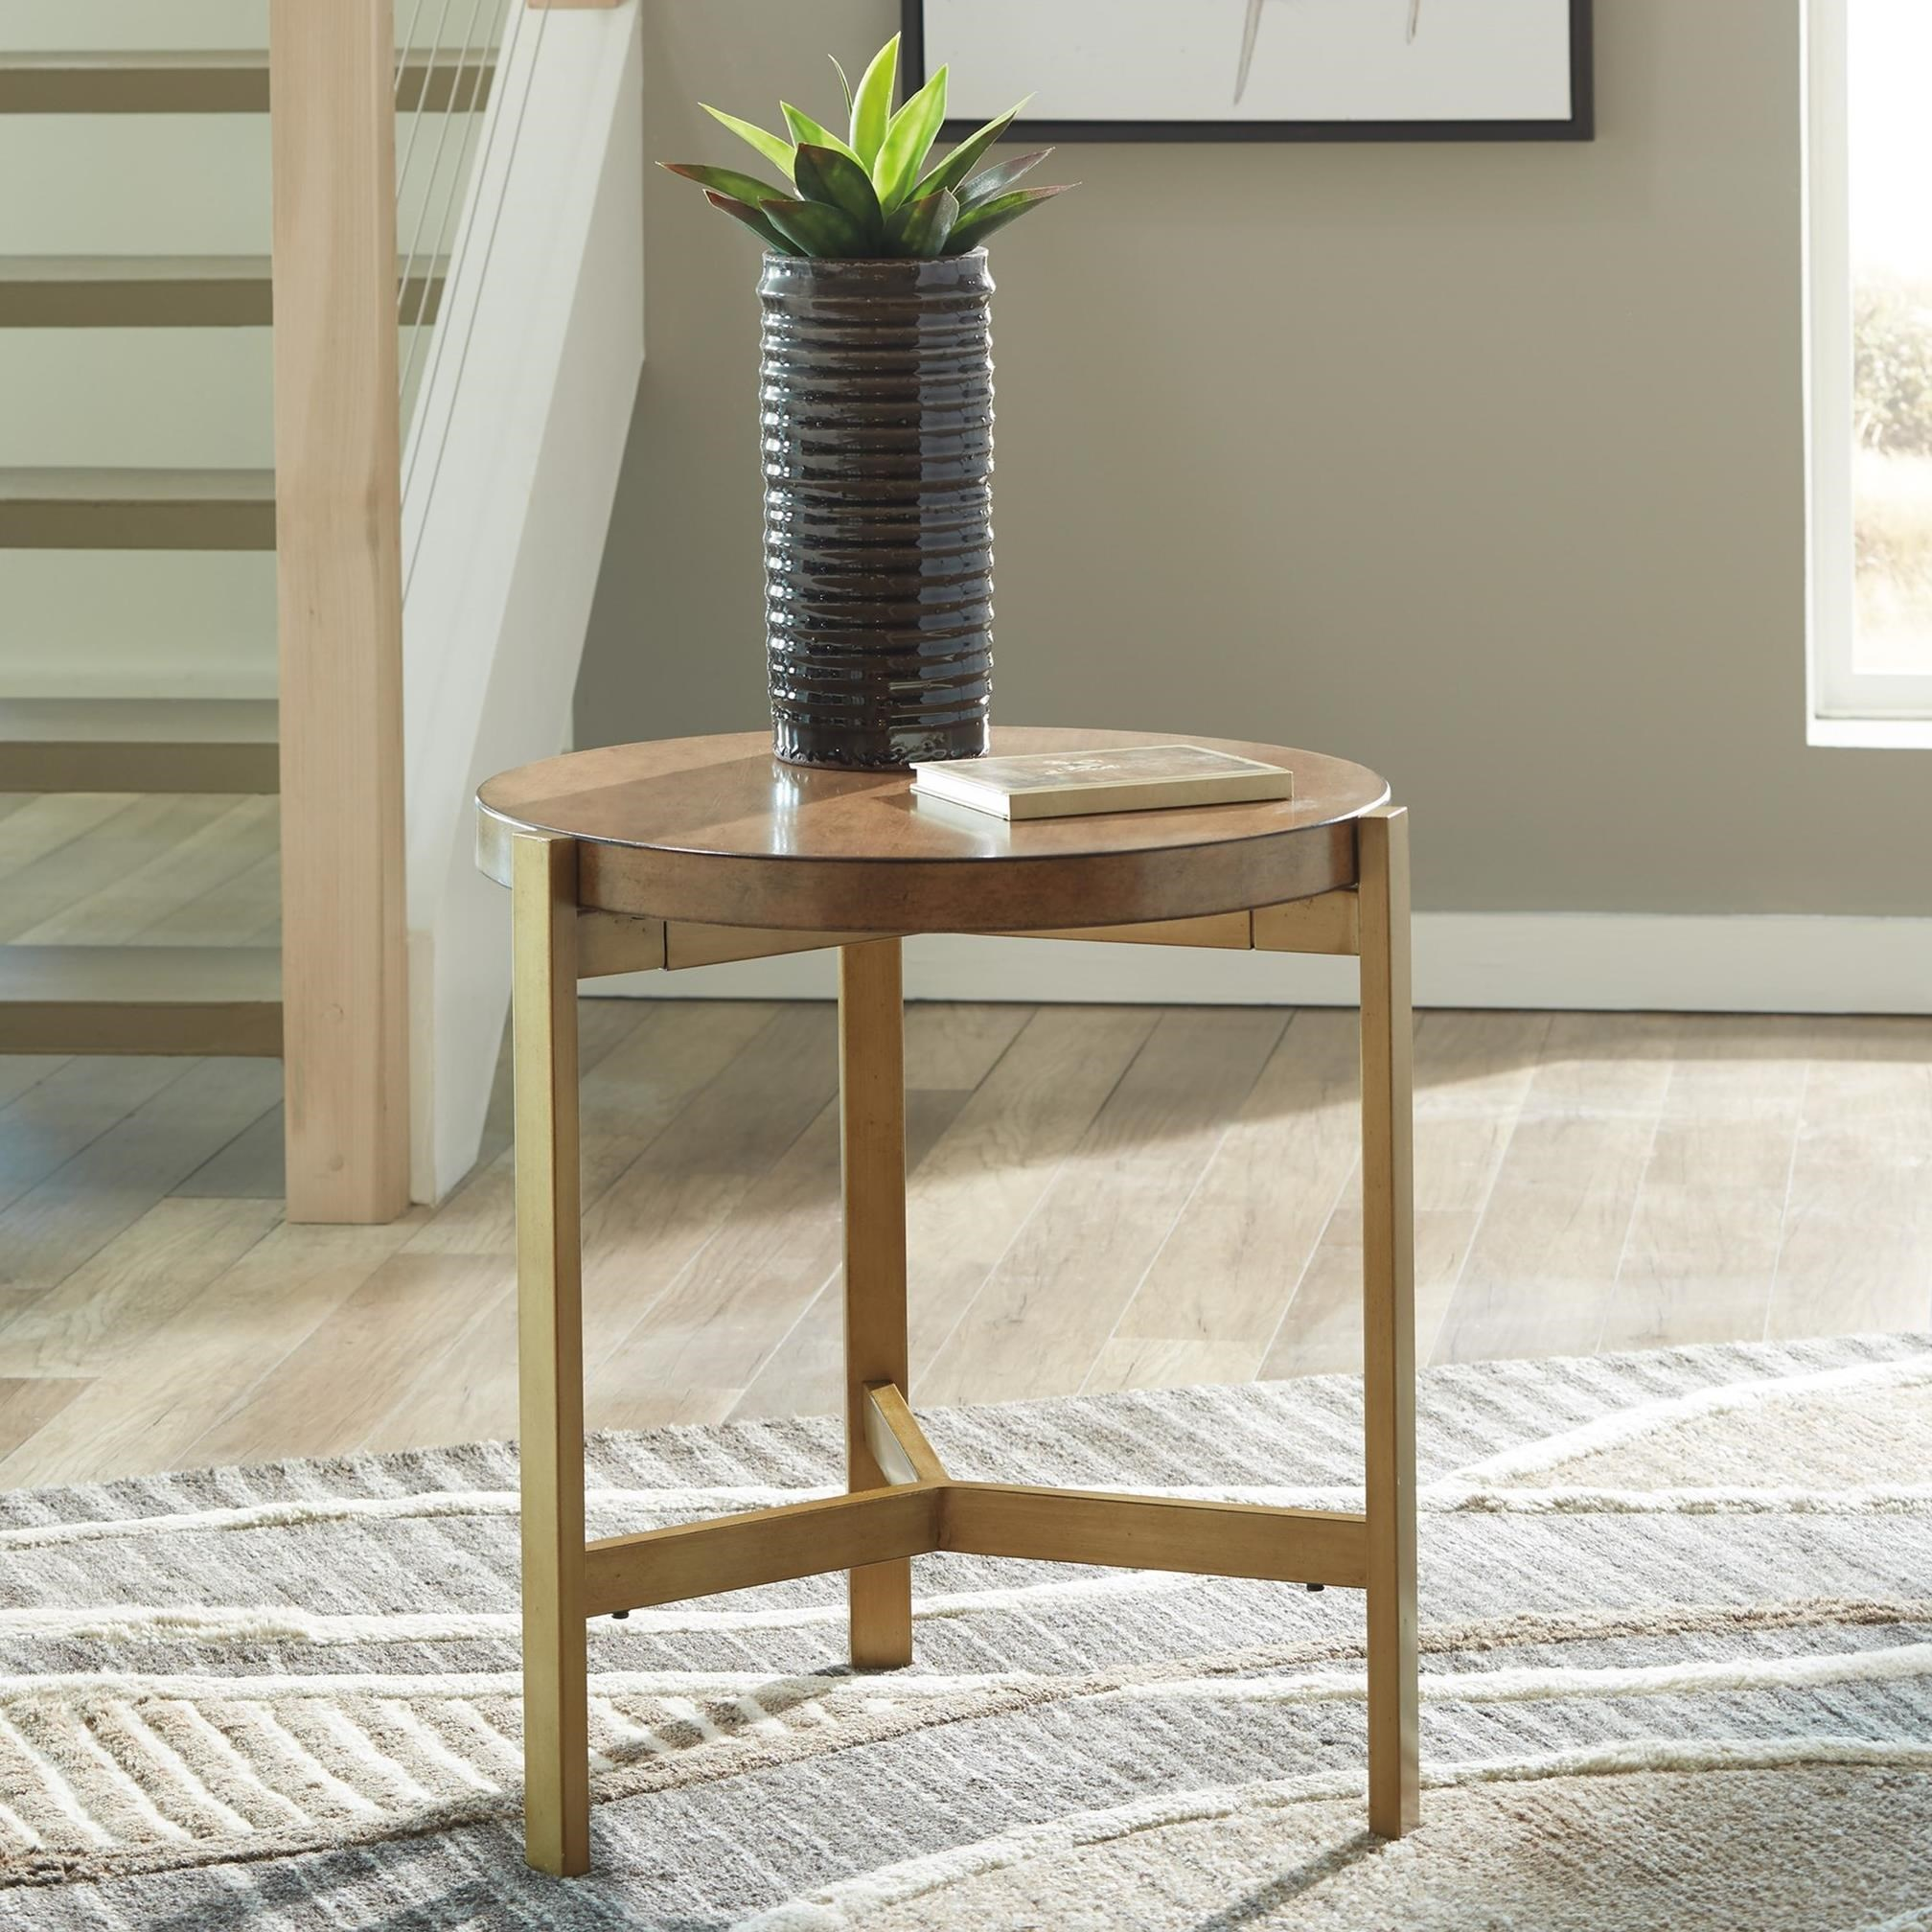 Signature Design By Ashley Brookfield Brown Round End: Signature Design By Ashley Franston T346-6 Contemporary